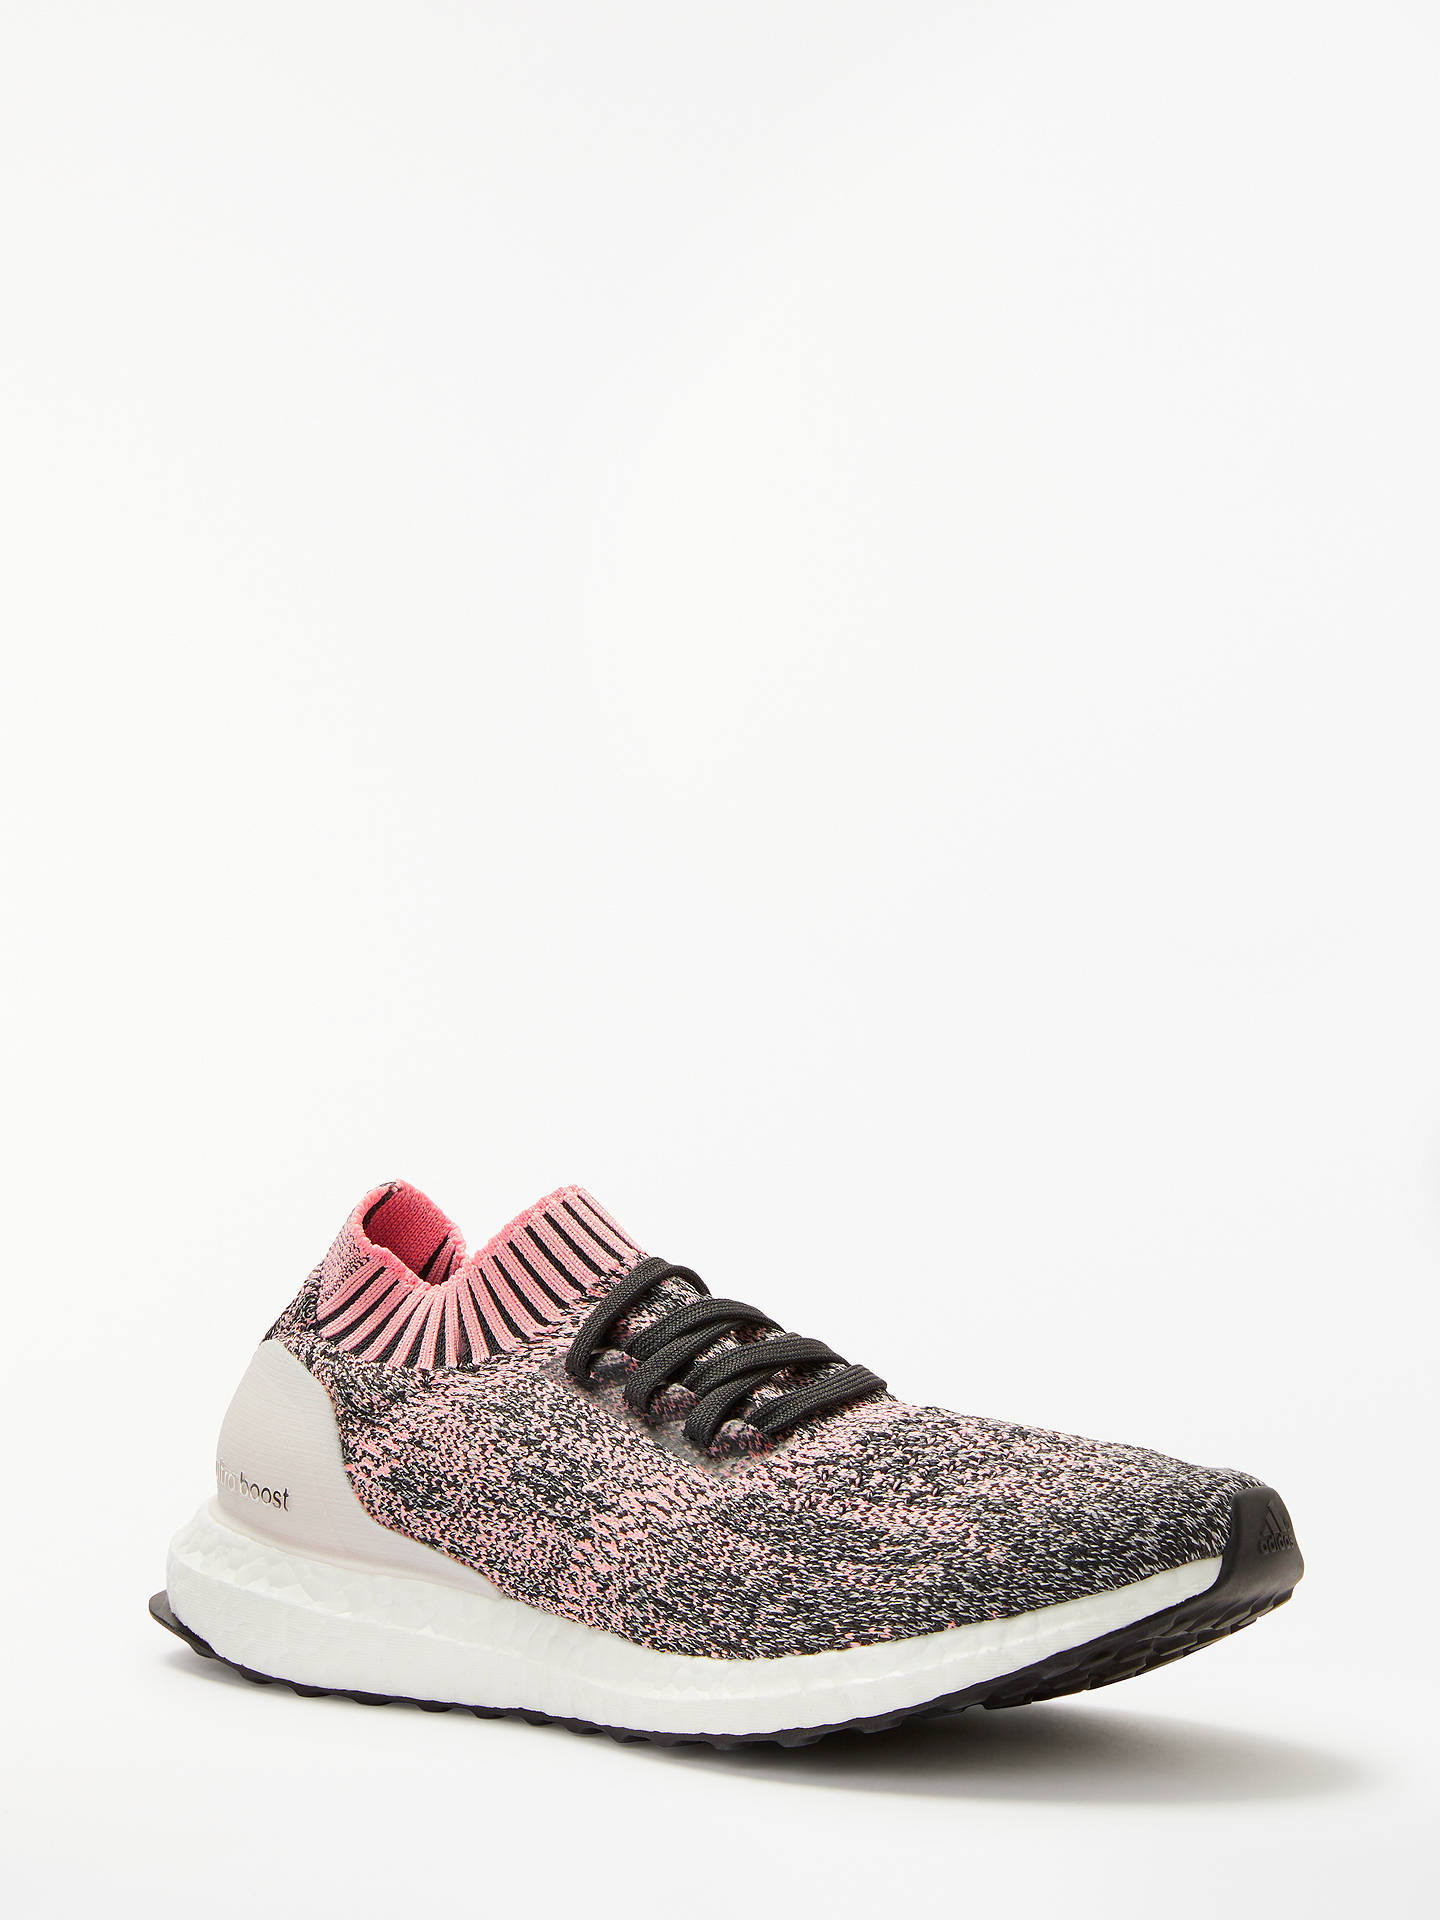 73a2091dd ... Buy adidas UltraBOOST Uncaged Women s Running Shoes